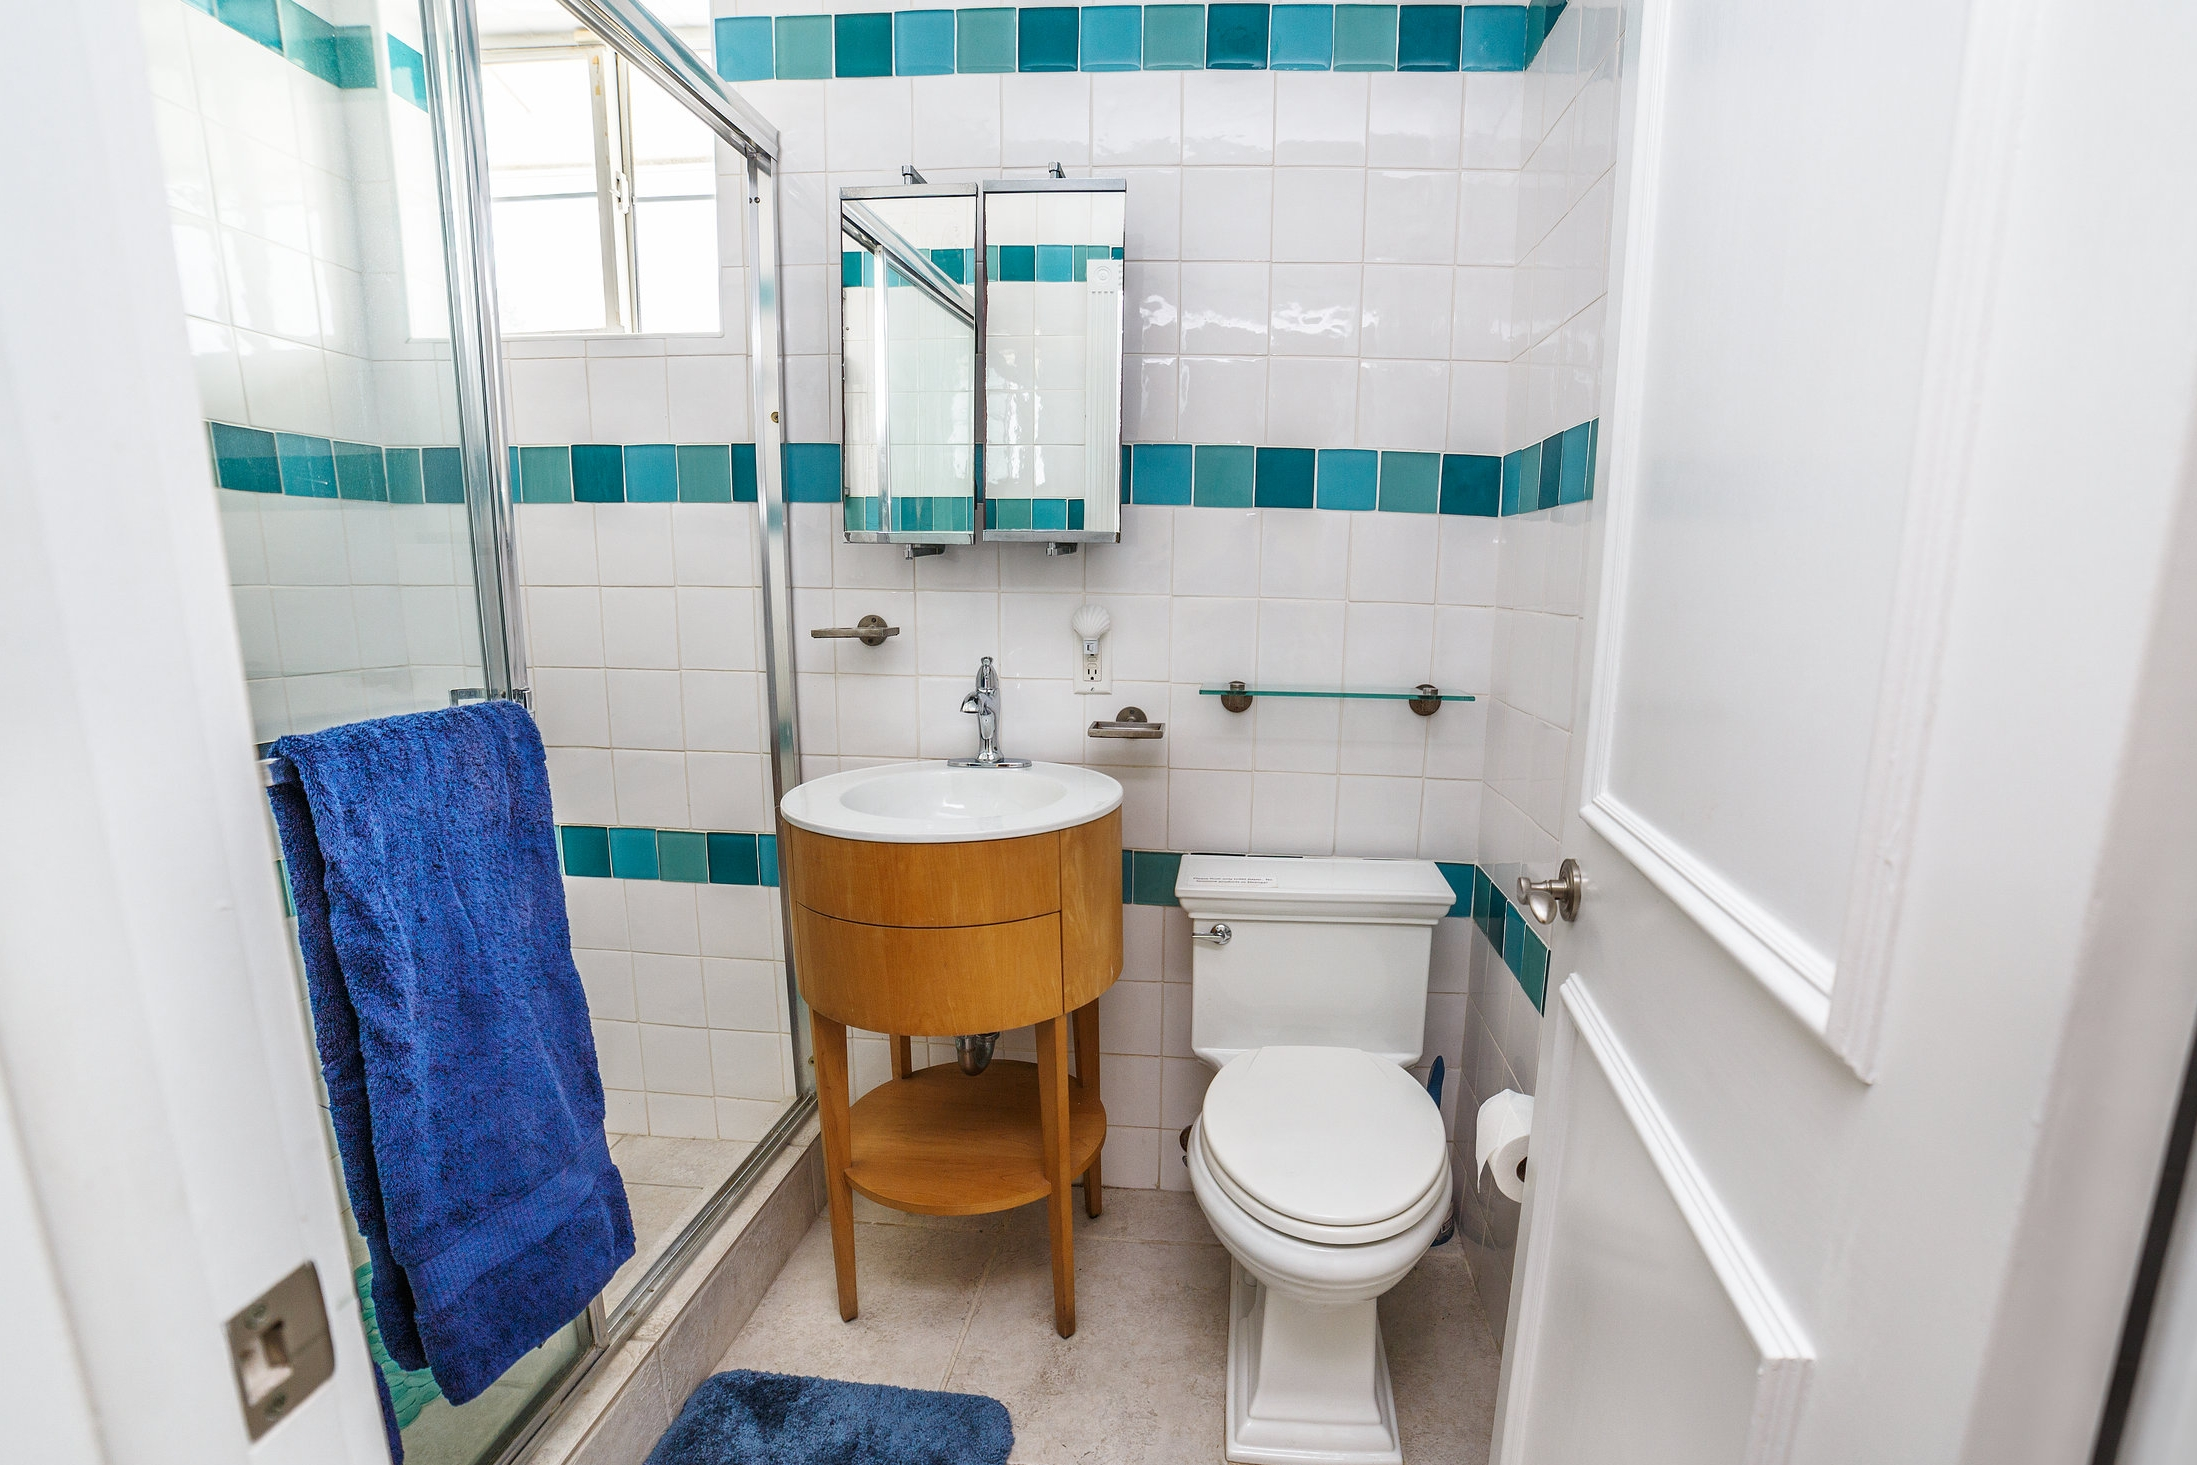 Bathroom attached to fourth bedroom